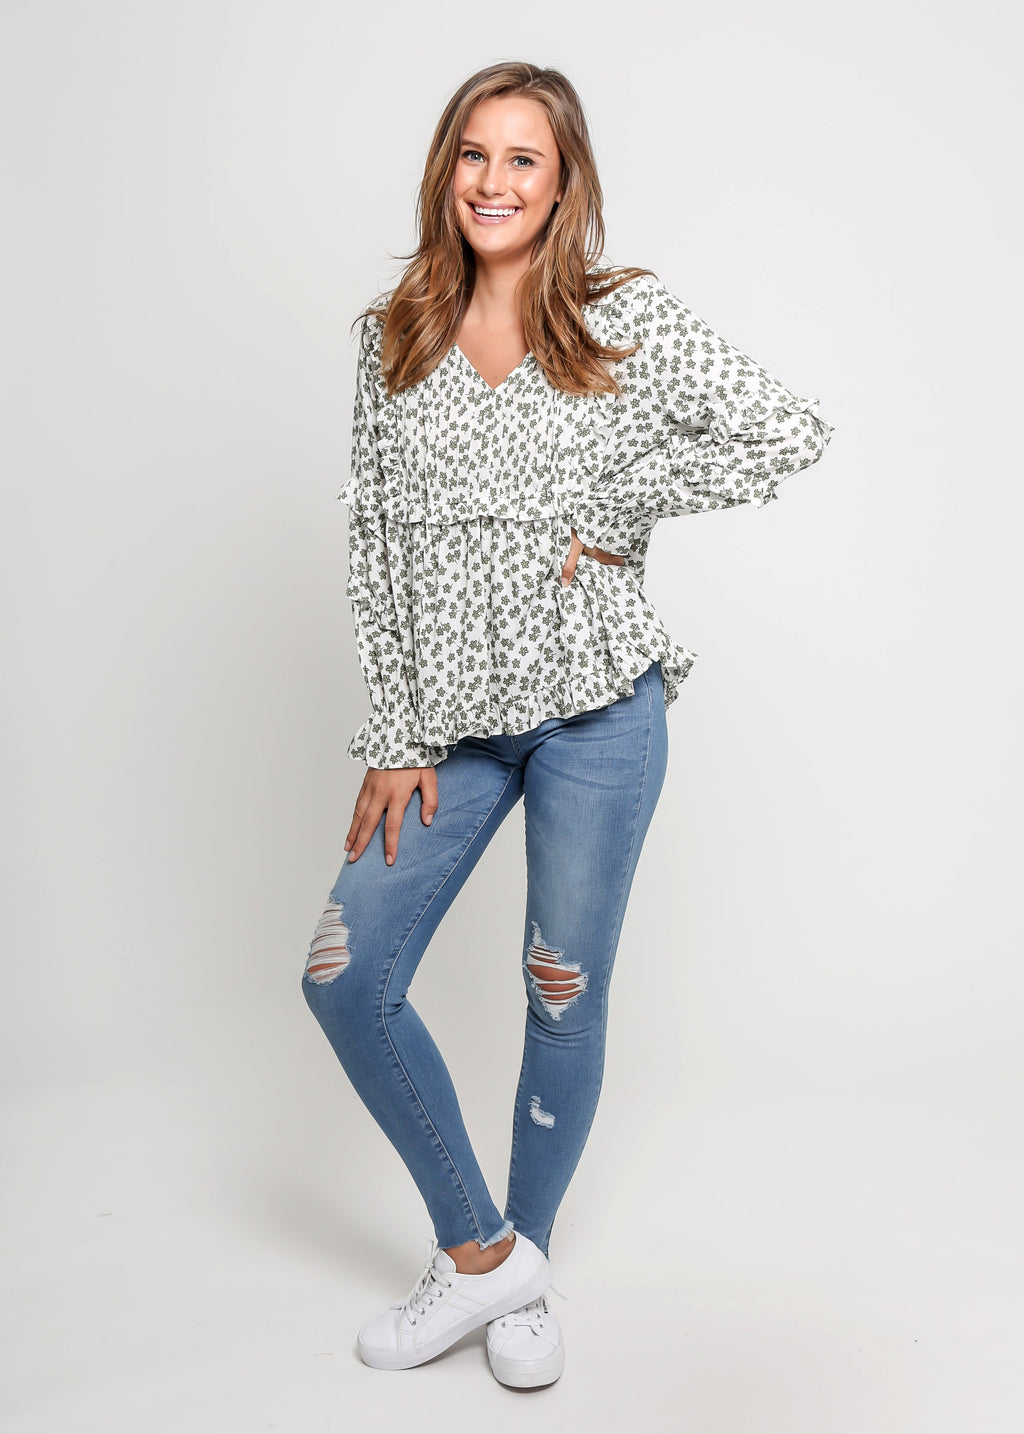 TIA TOP - GREEN FLORAL